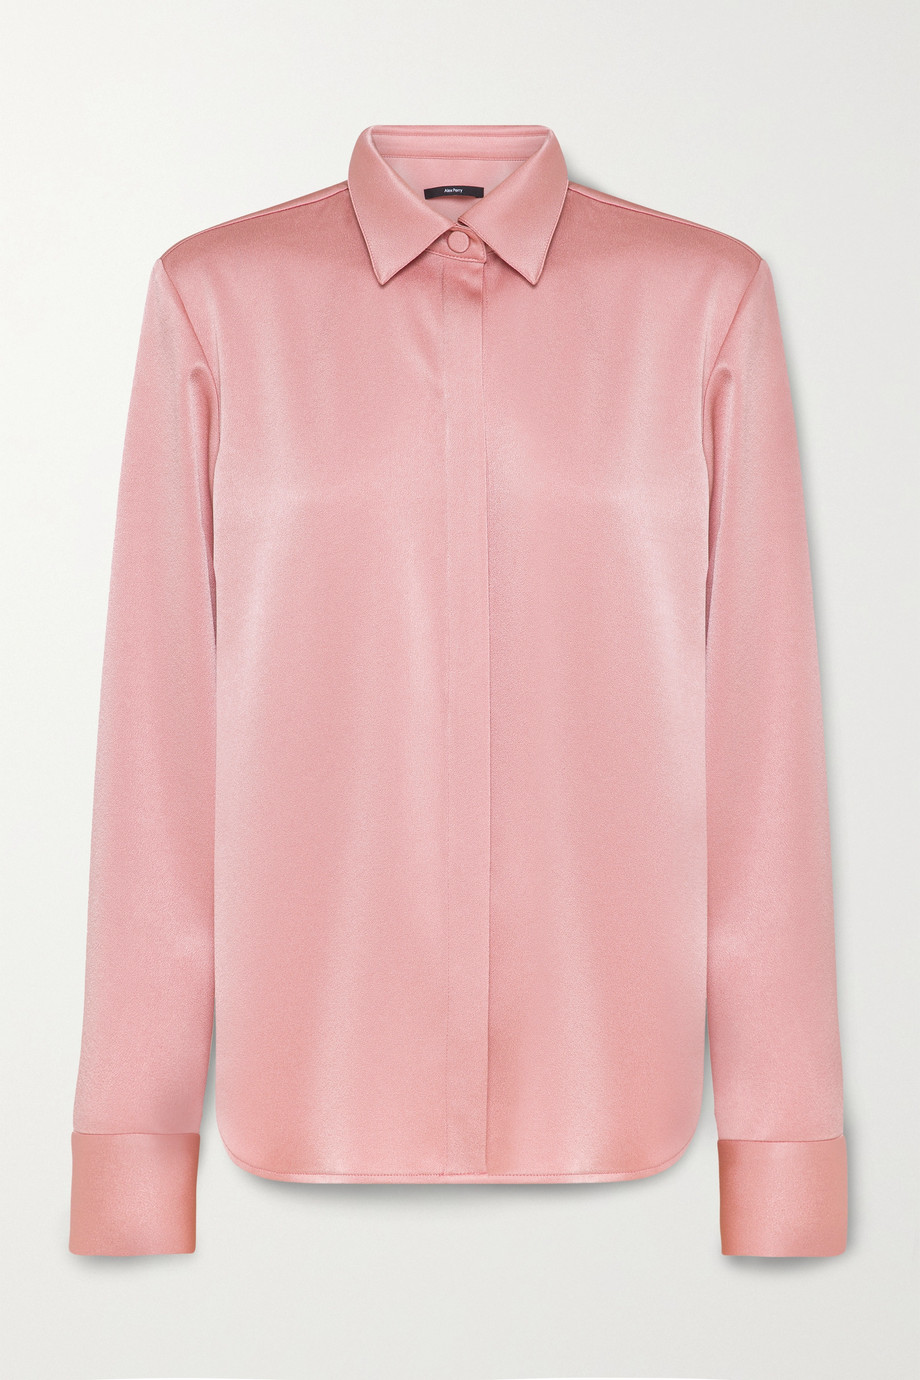 Alex Perry Kristen satin-crepe shirt